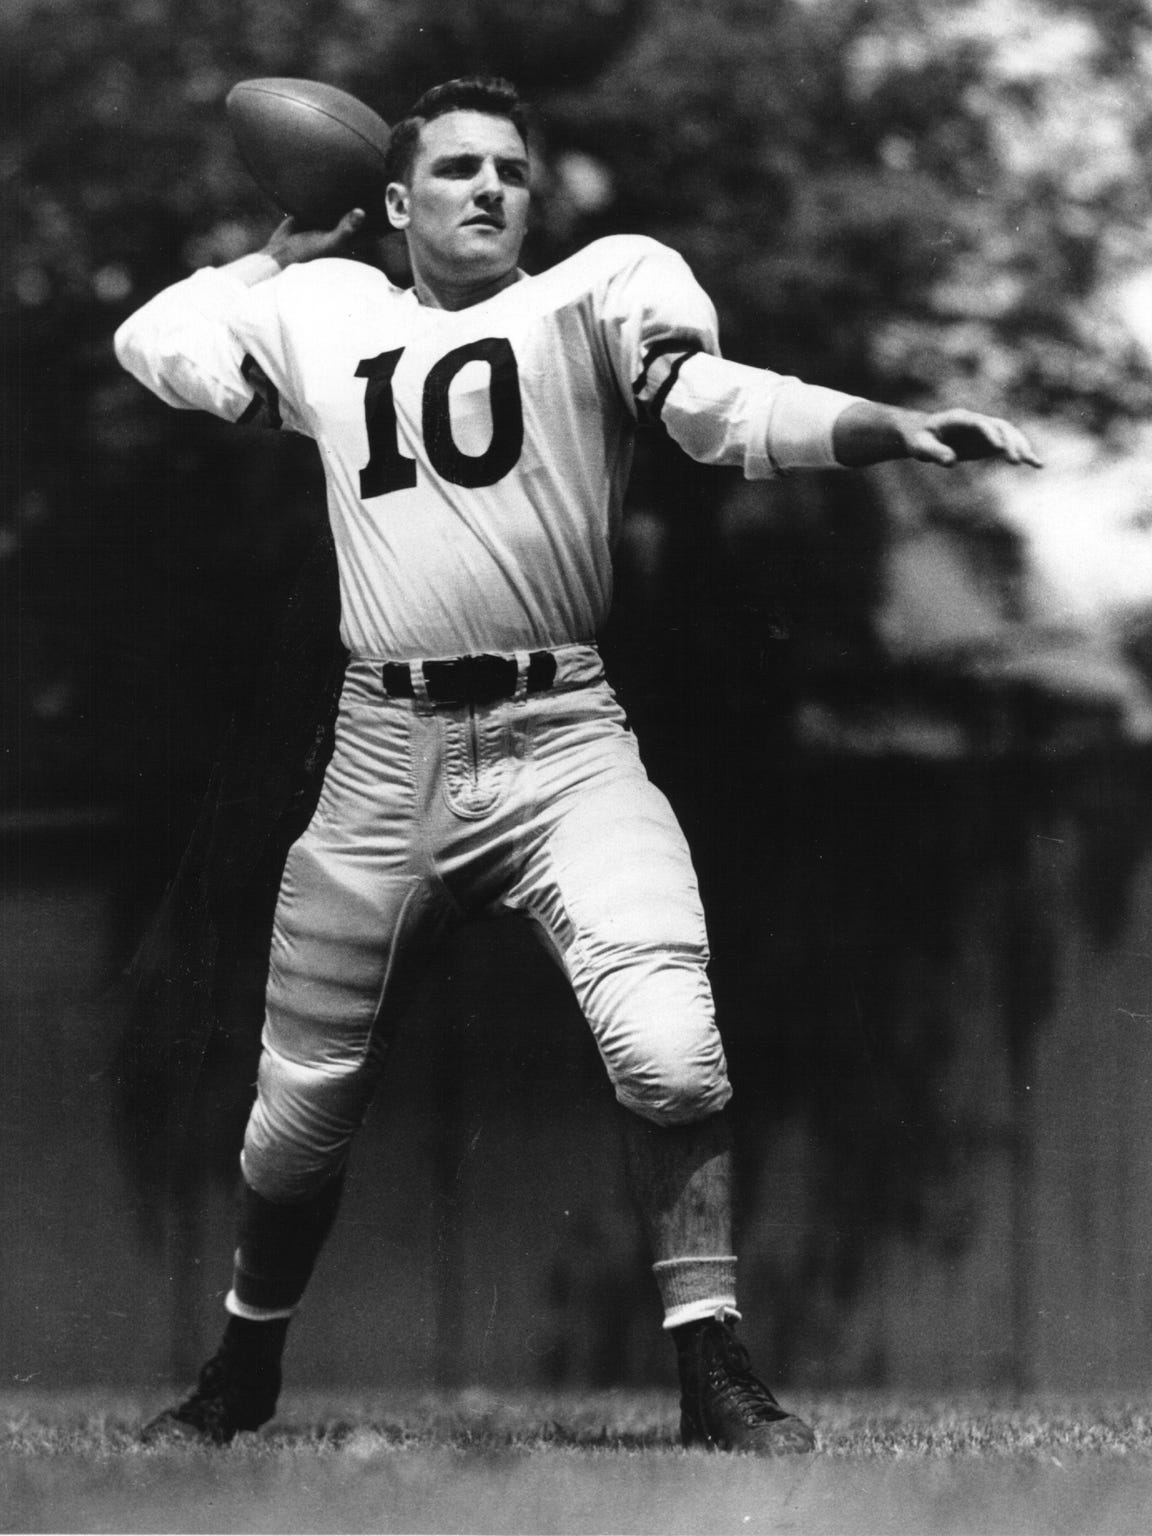 Purdue quarterback Dale Samuels in 1950, the year he guided the Boilermakers to arguably their biggest victory in school history.